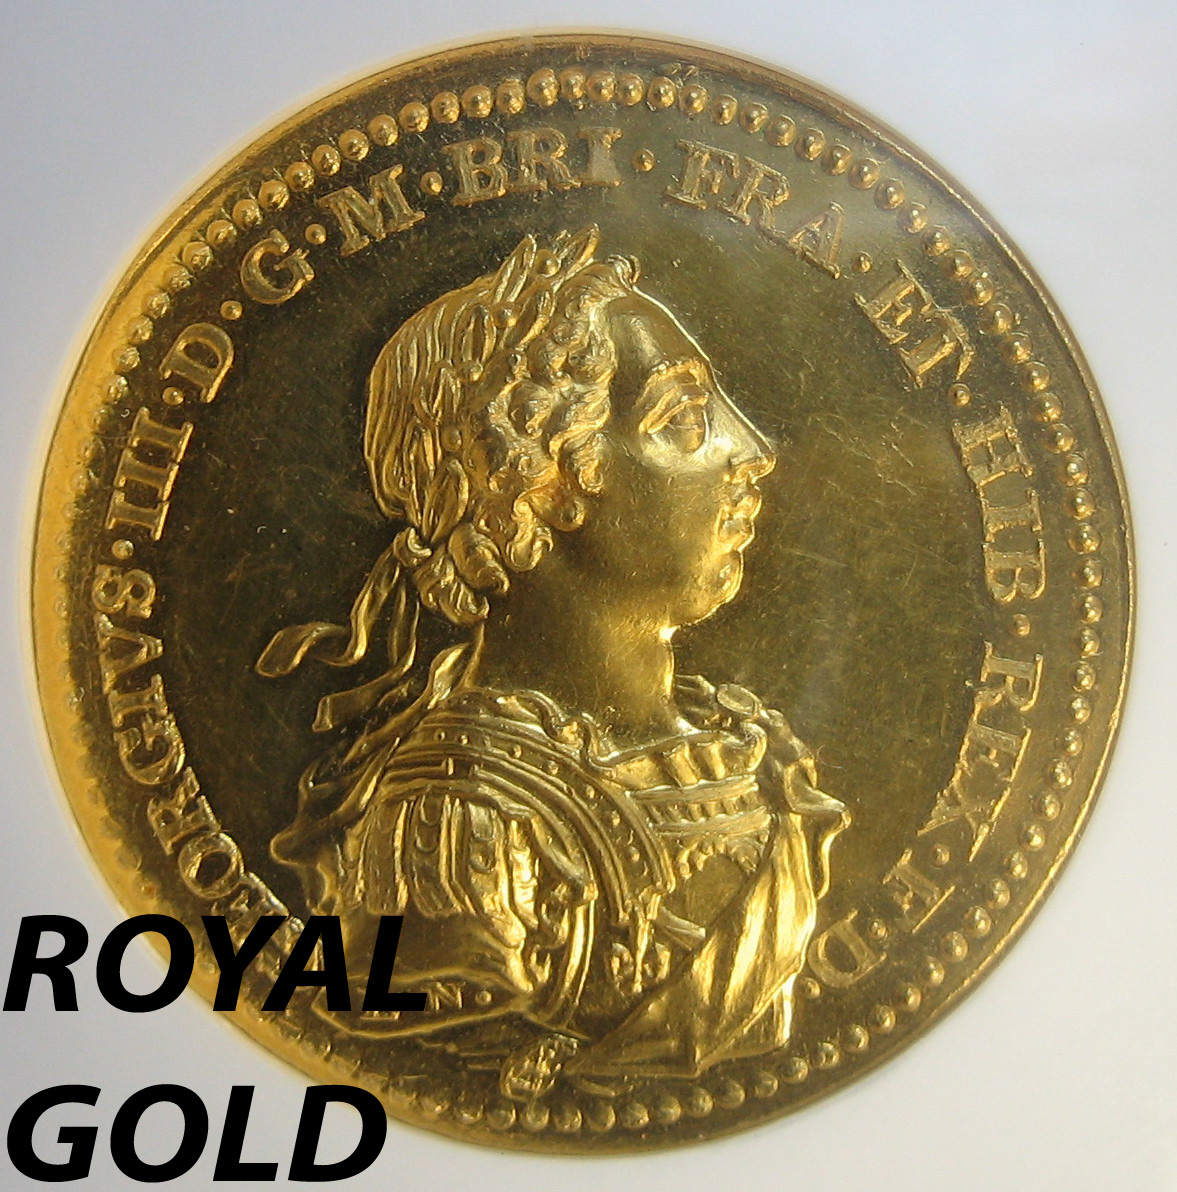 Royal Gold Coins